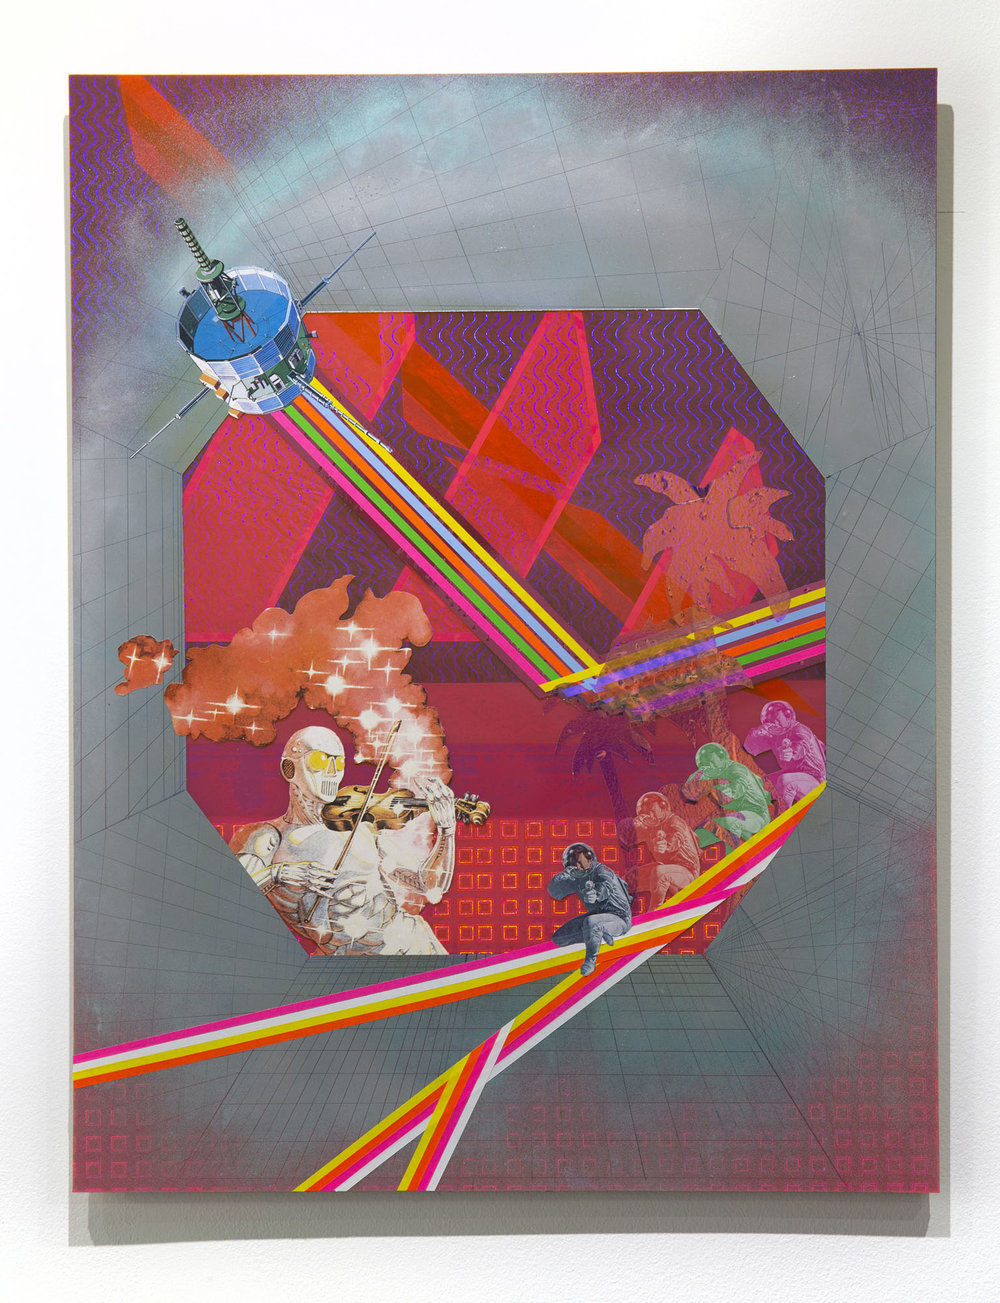 Cowboys and Indians     2018 Vinyl, tape, Mylar, cellophane, spray paint, and paper on plexiglass 31h x 24w in